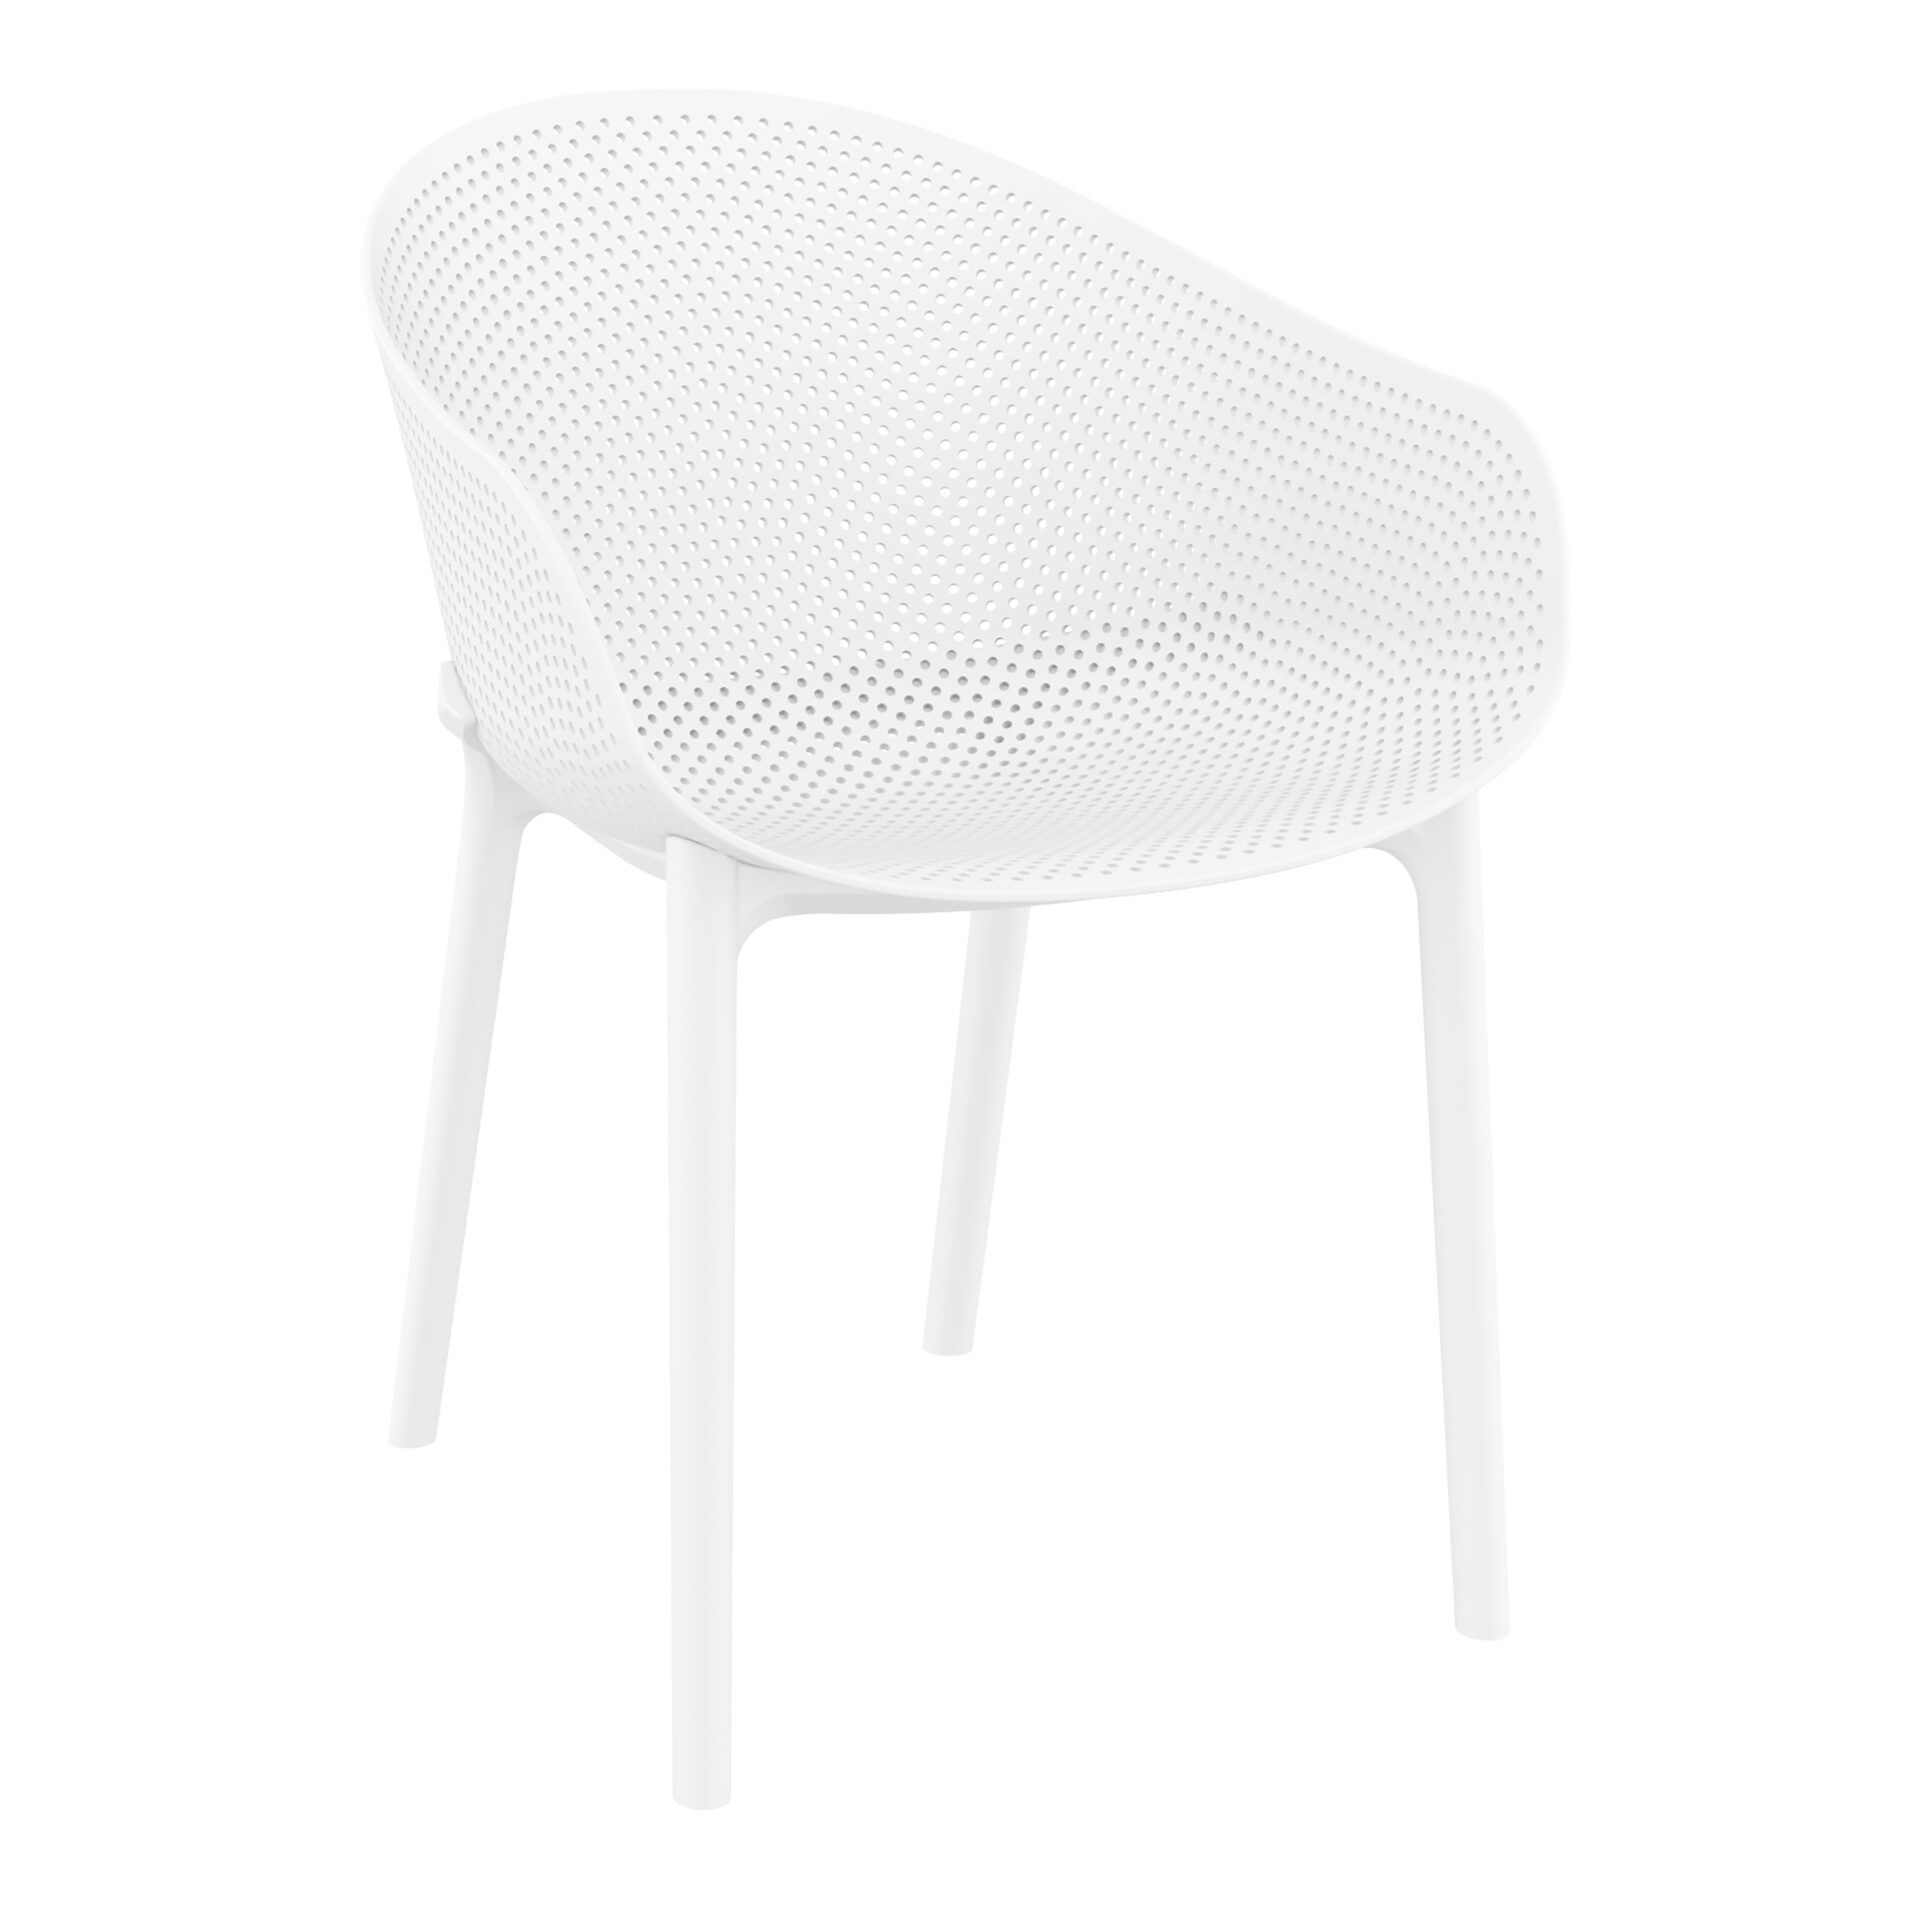 outdoor seating polypropylene sky chair white front side